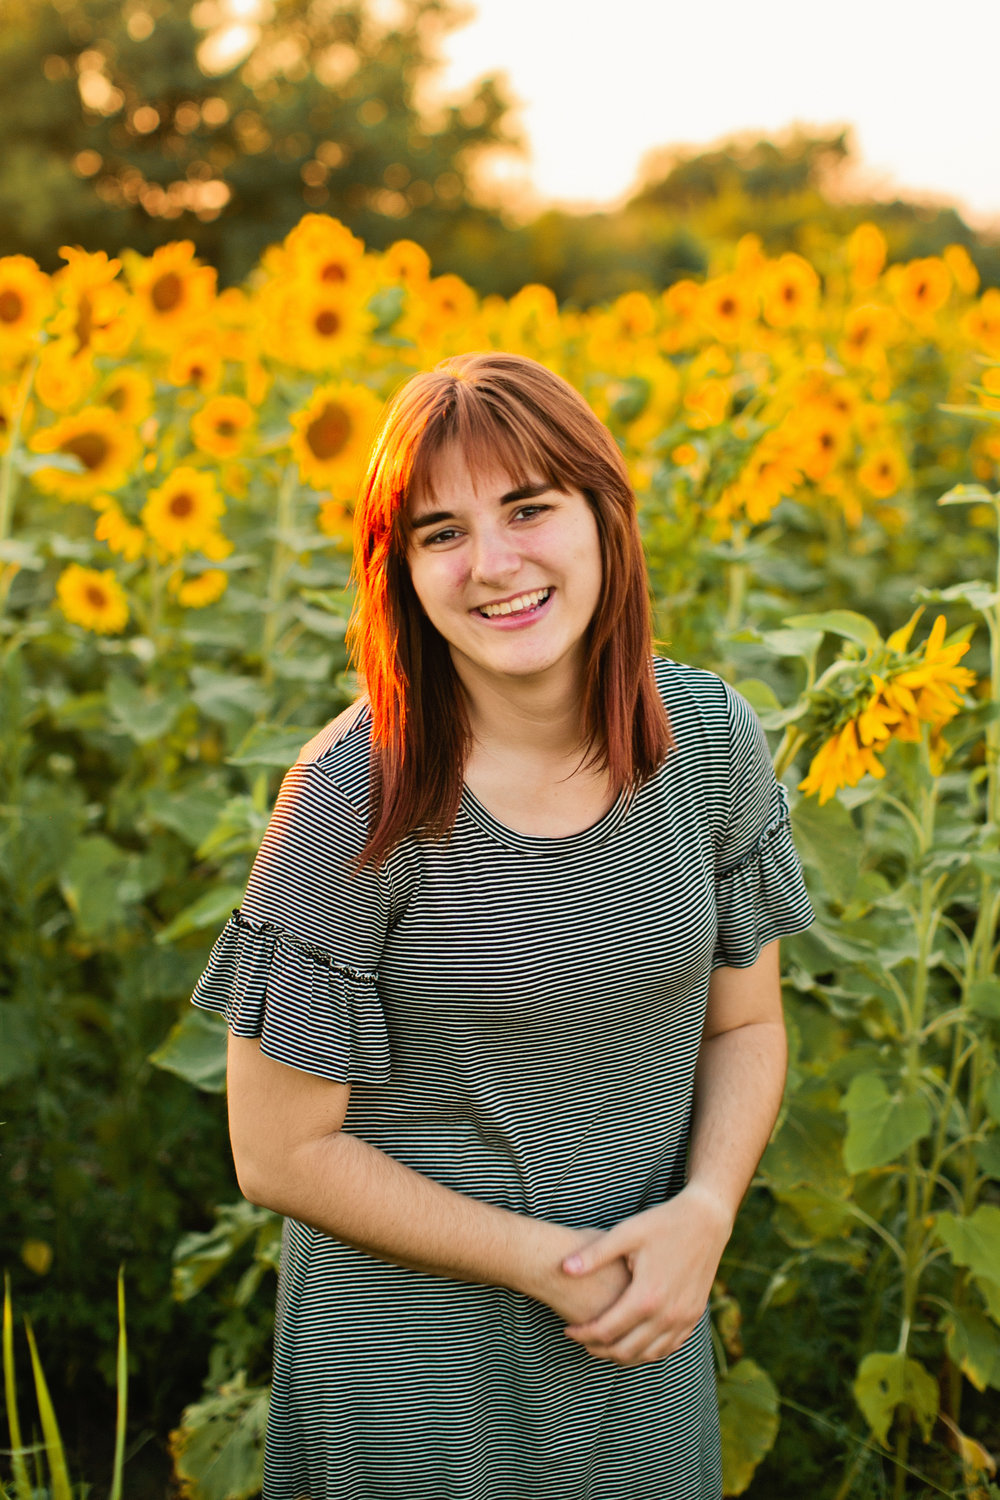 des moines senior photographers filed of sunflowers